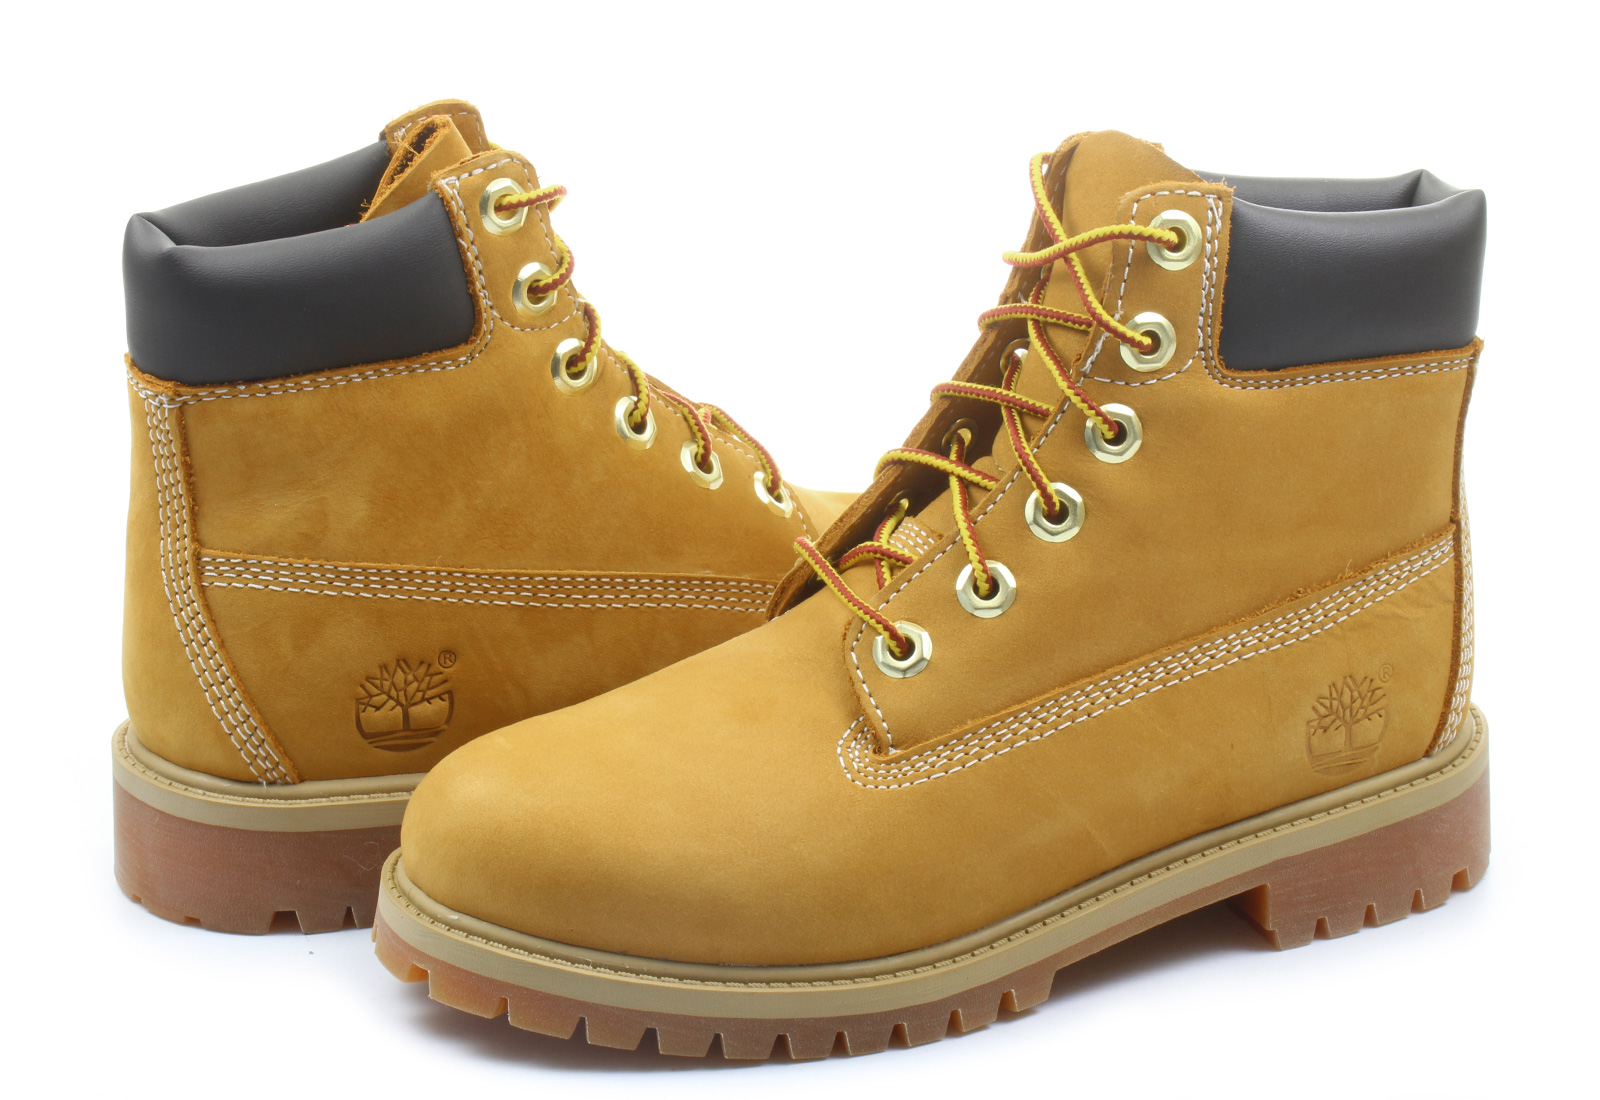 Timberland Bakancs - 6 Inch Prem Boot - 12909-WHE - Office Shoes ... 8692436e57